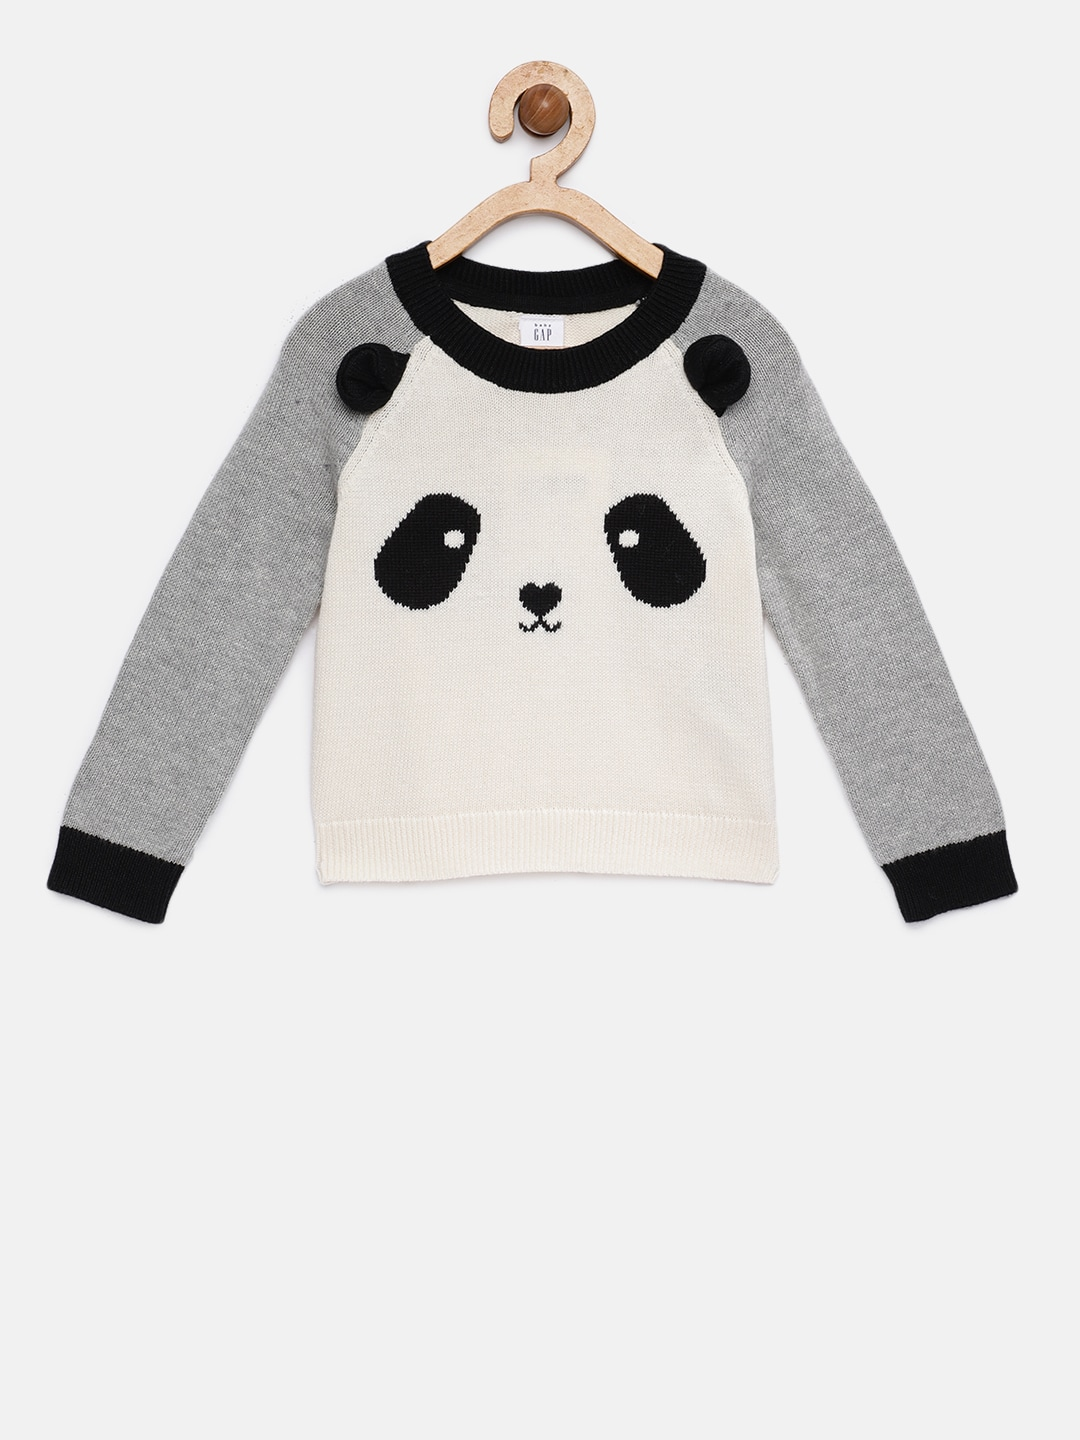 20db58e41745 Kids Sweaters - Buy Sweaters for Kids Online in India